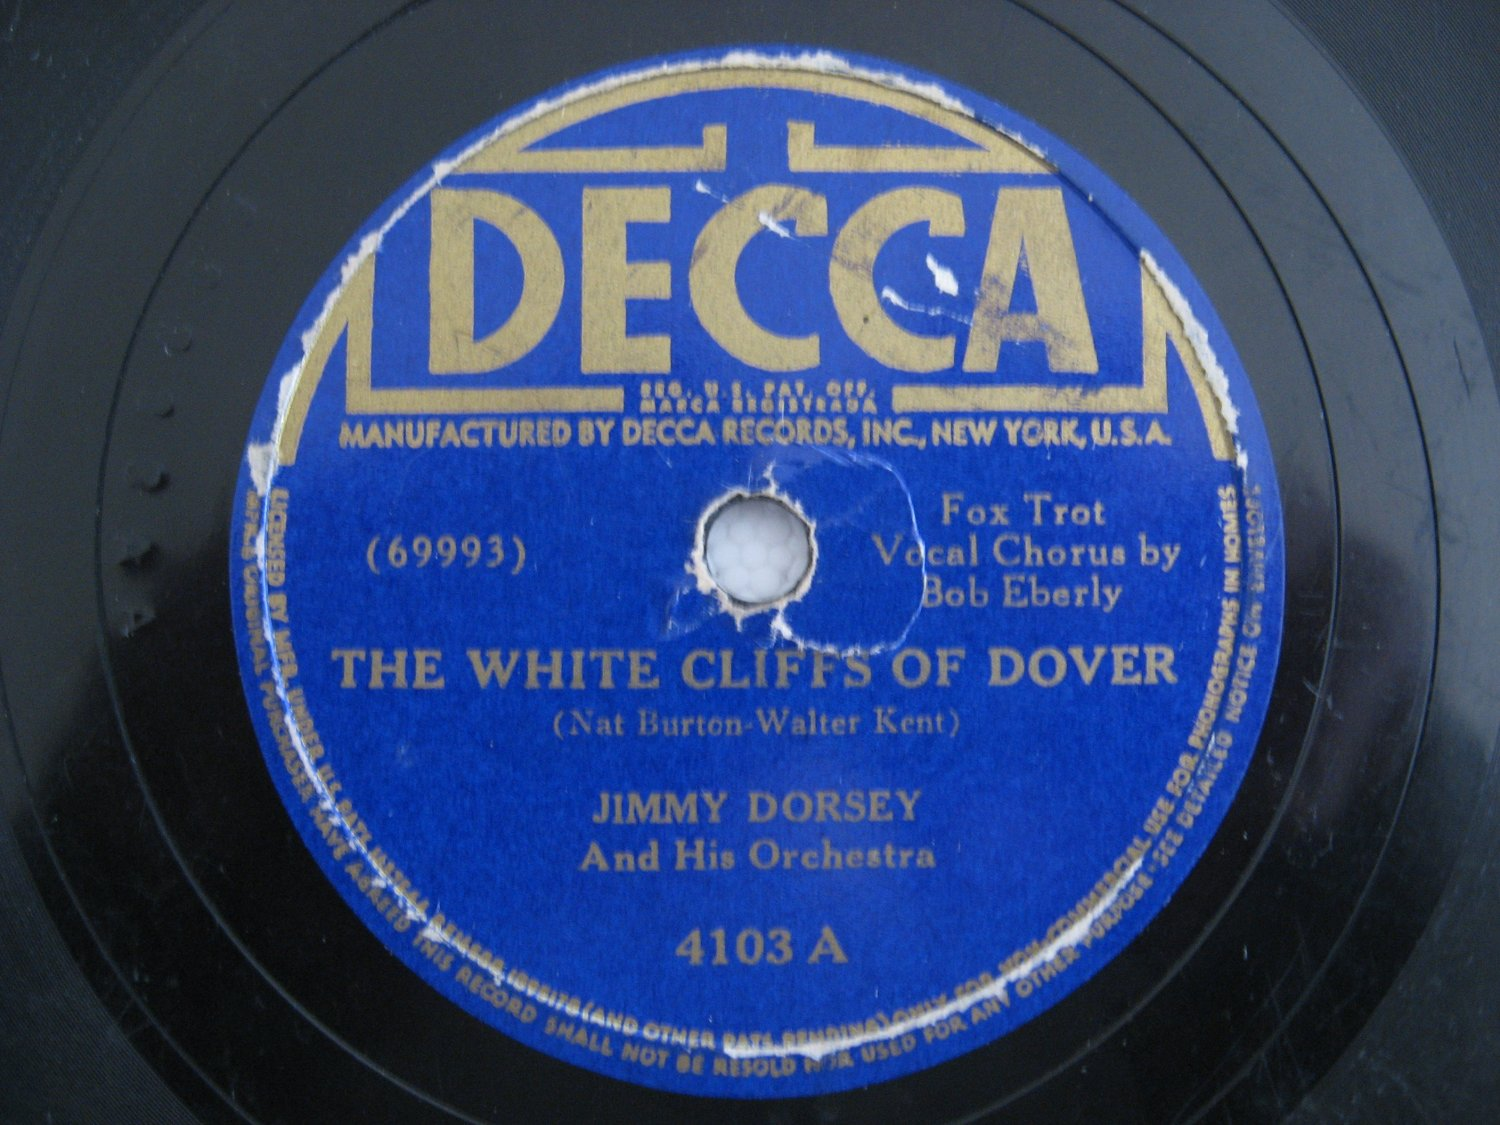 Jimmy Dorsey / O'Connell / Eberly - The White Cliffs Of Dover   (Vinyl Record)